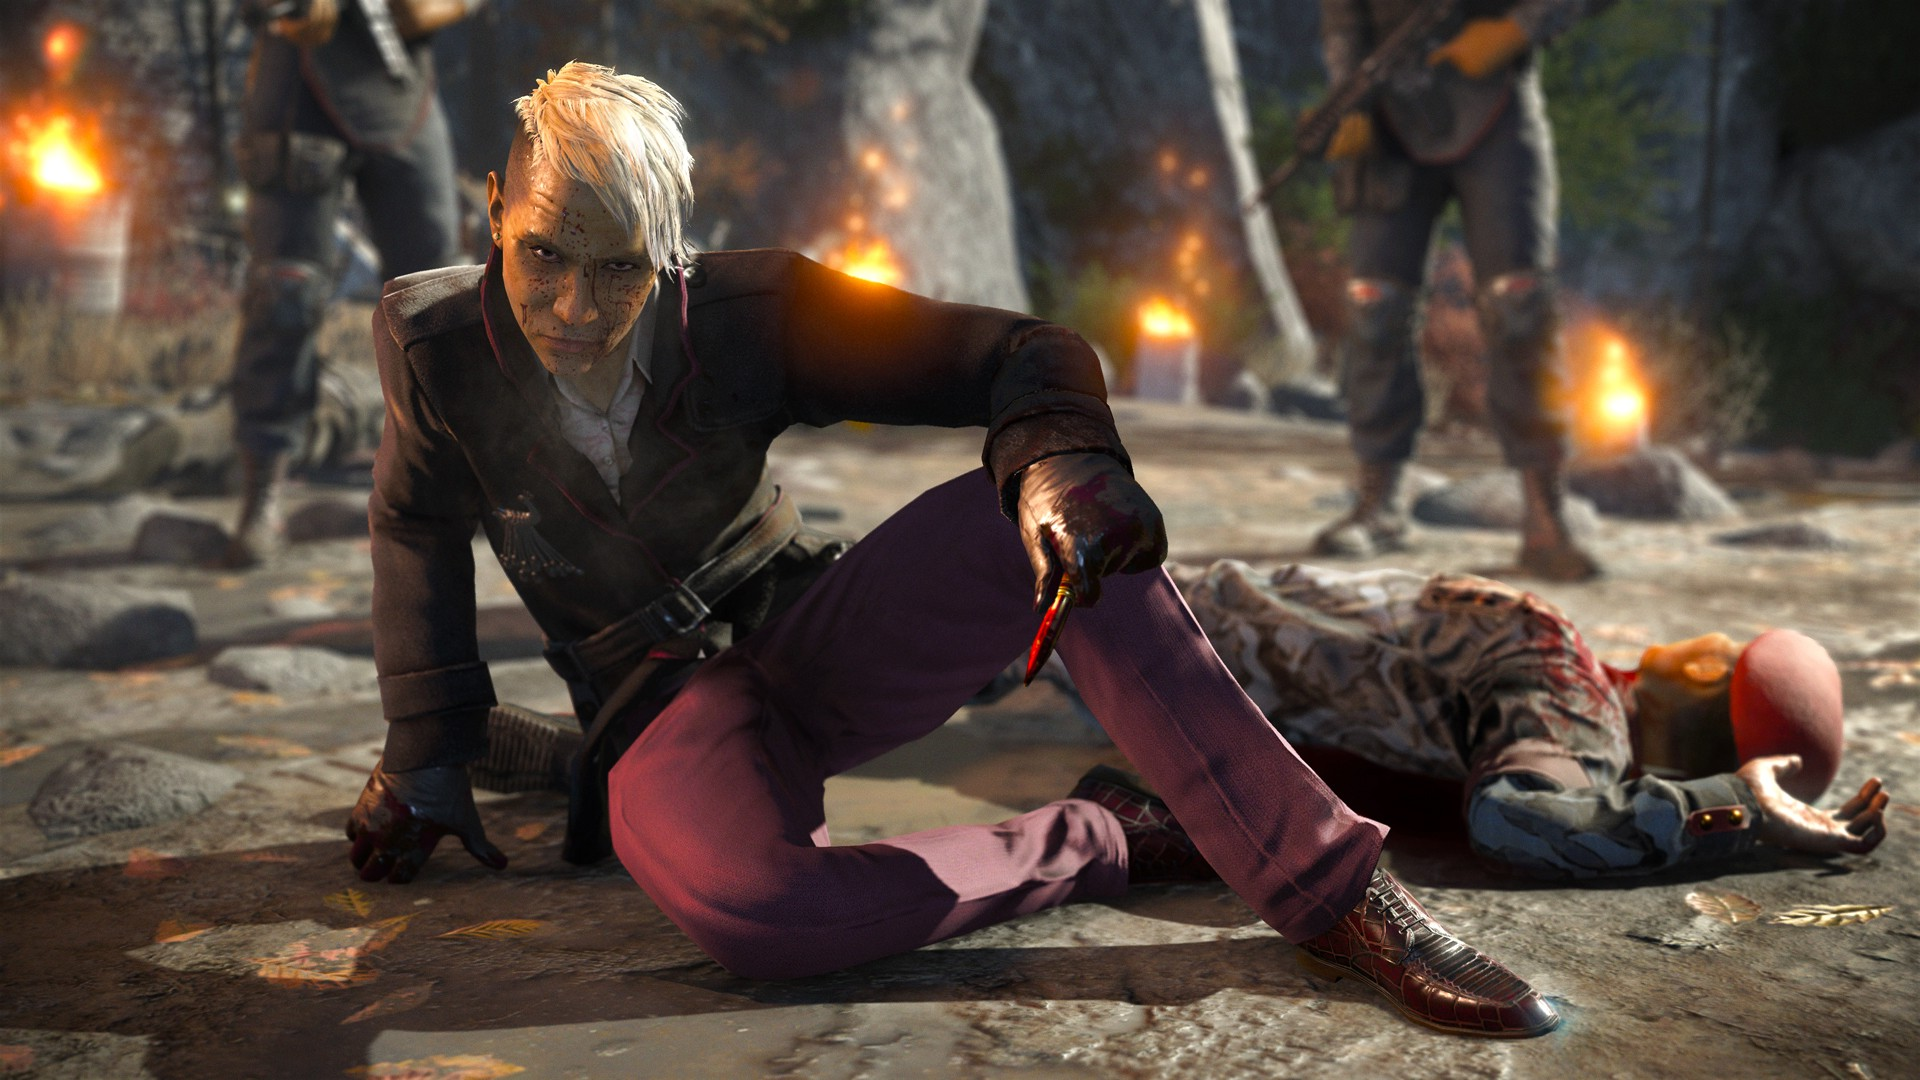 Animated Fall Wallpaper Pagan Min Far Cry Far Cry 4 Video Games Wallpapers Hd